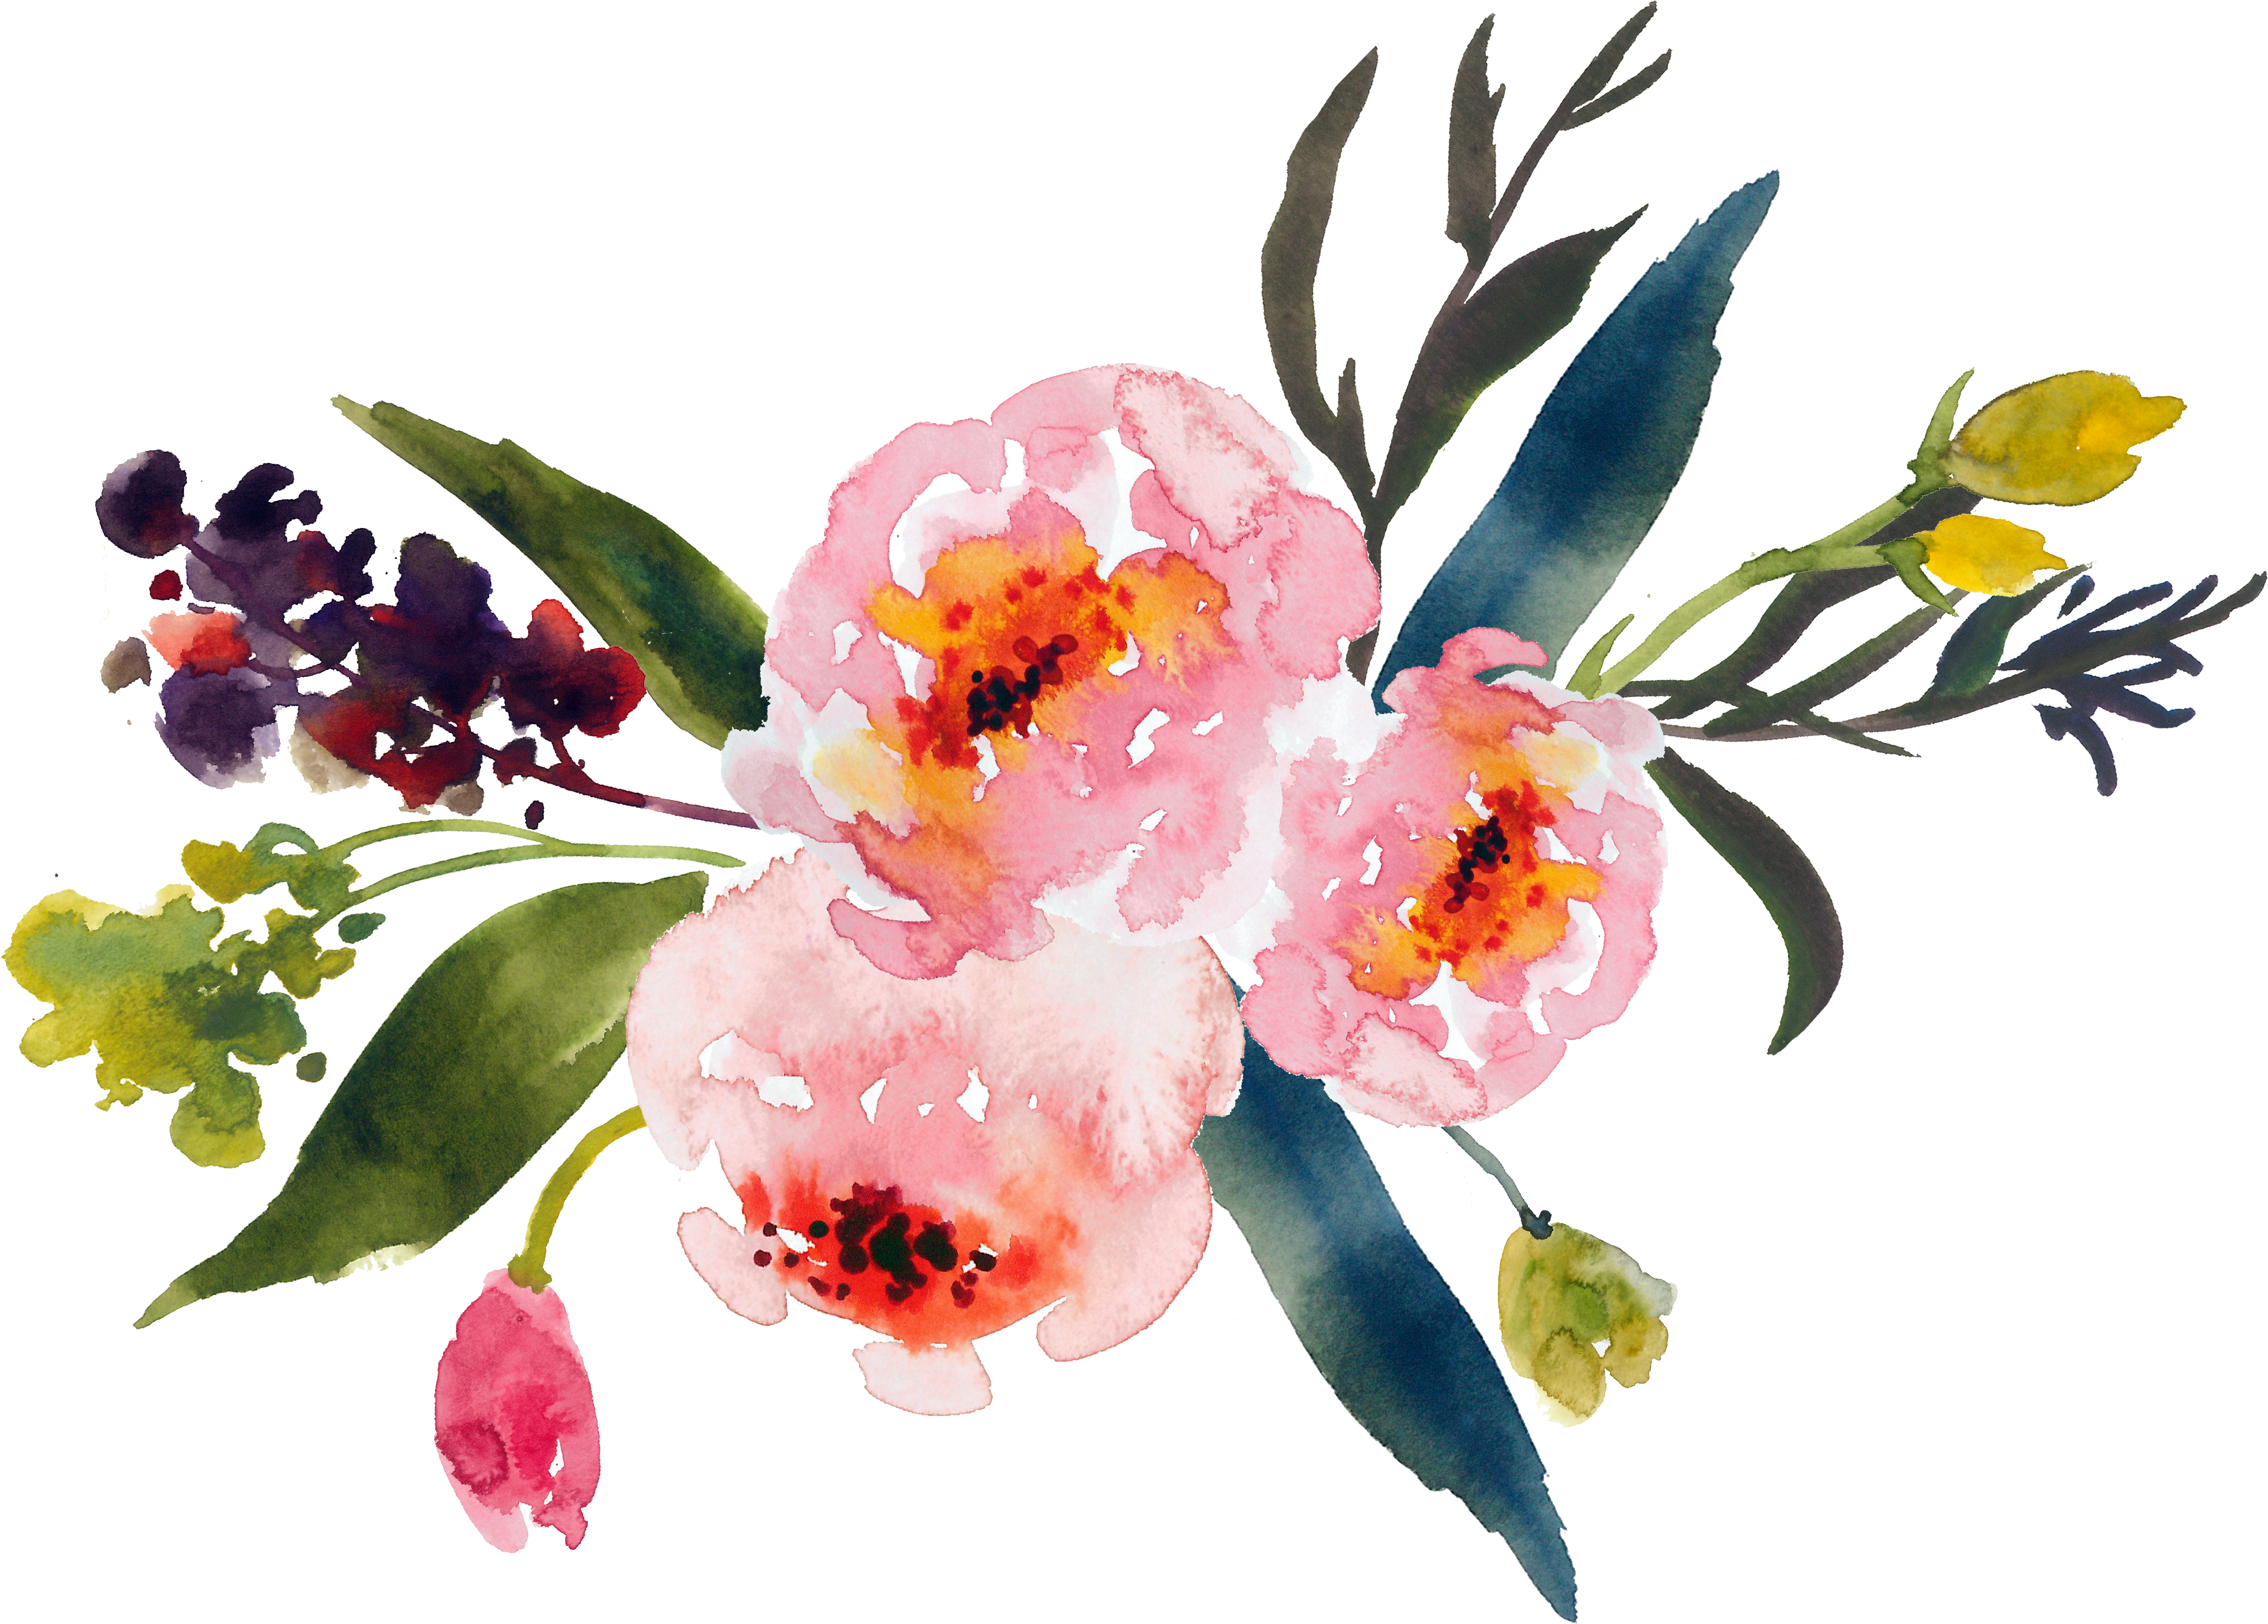 Cheese watercolor png. Flower bouquet painting clip